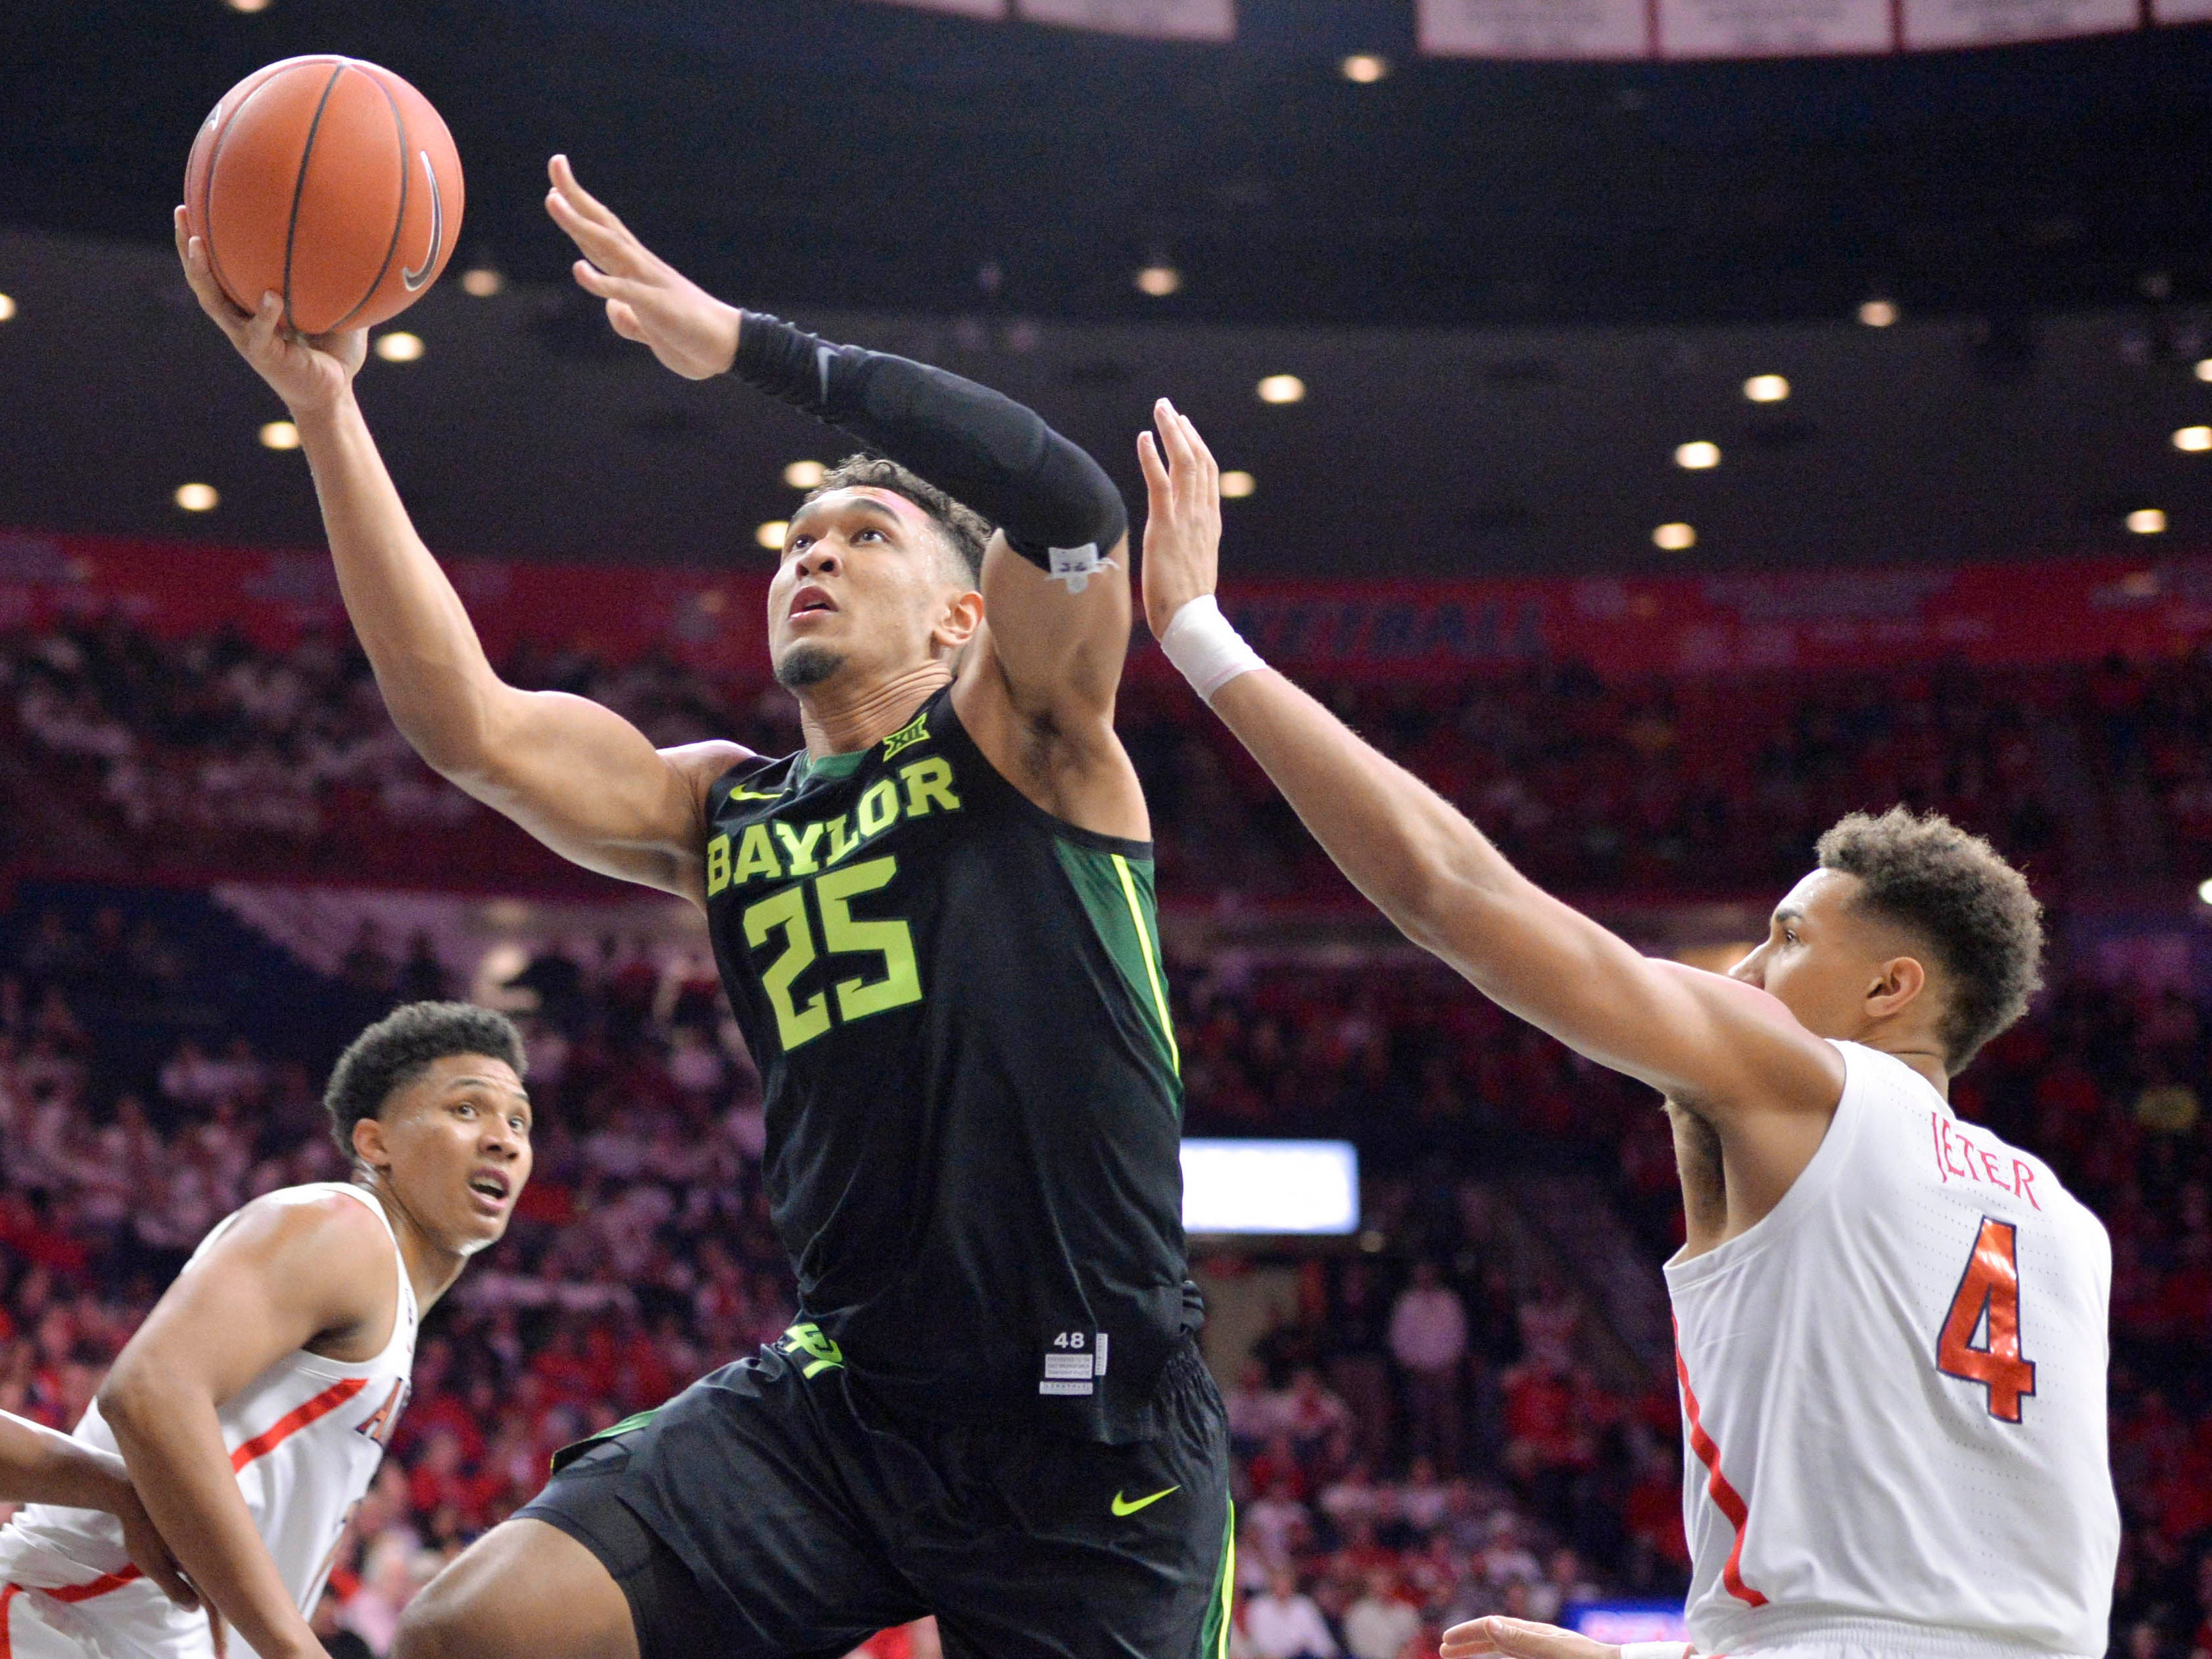 Dec 15, 2018; Tucson, AZ, USA; Baylor Bears forward Tristan Clark (25) shoots the ball as Arizona Wildcats center Chase Jeter (4) defends during the first half at McKale Center.